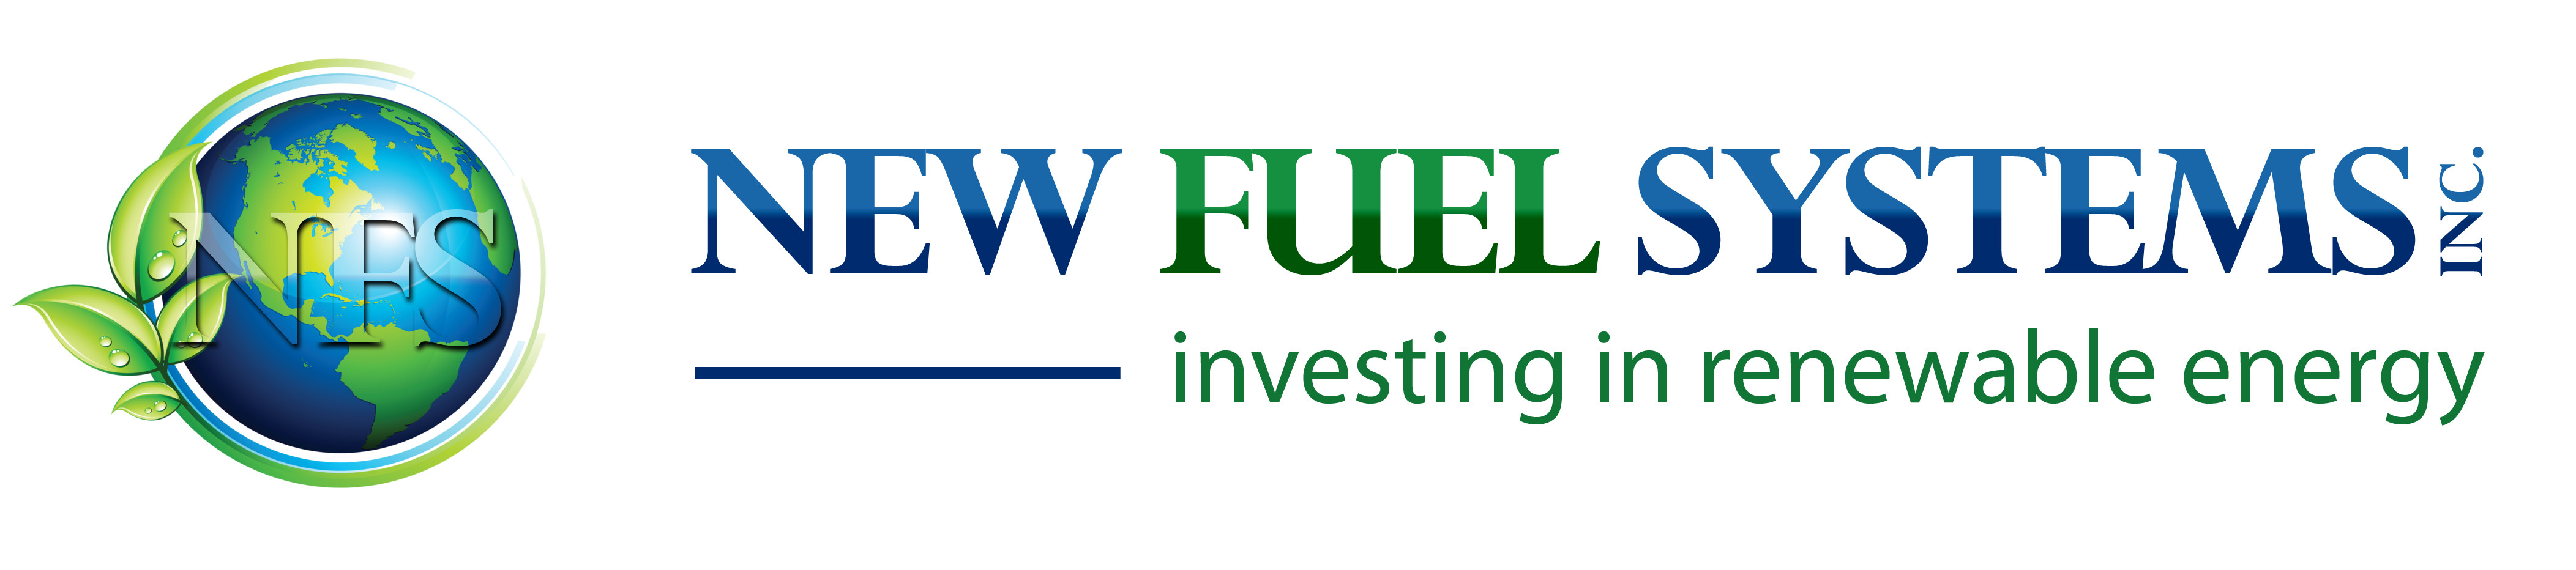 Care about the Environment? Check out what New Fuel Systems Inc is doing!!